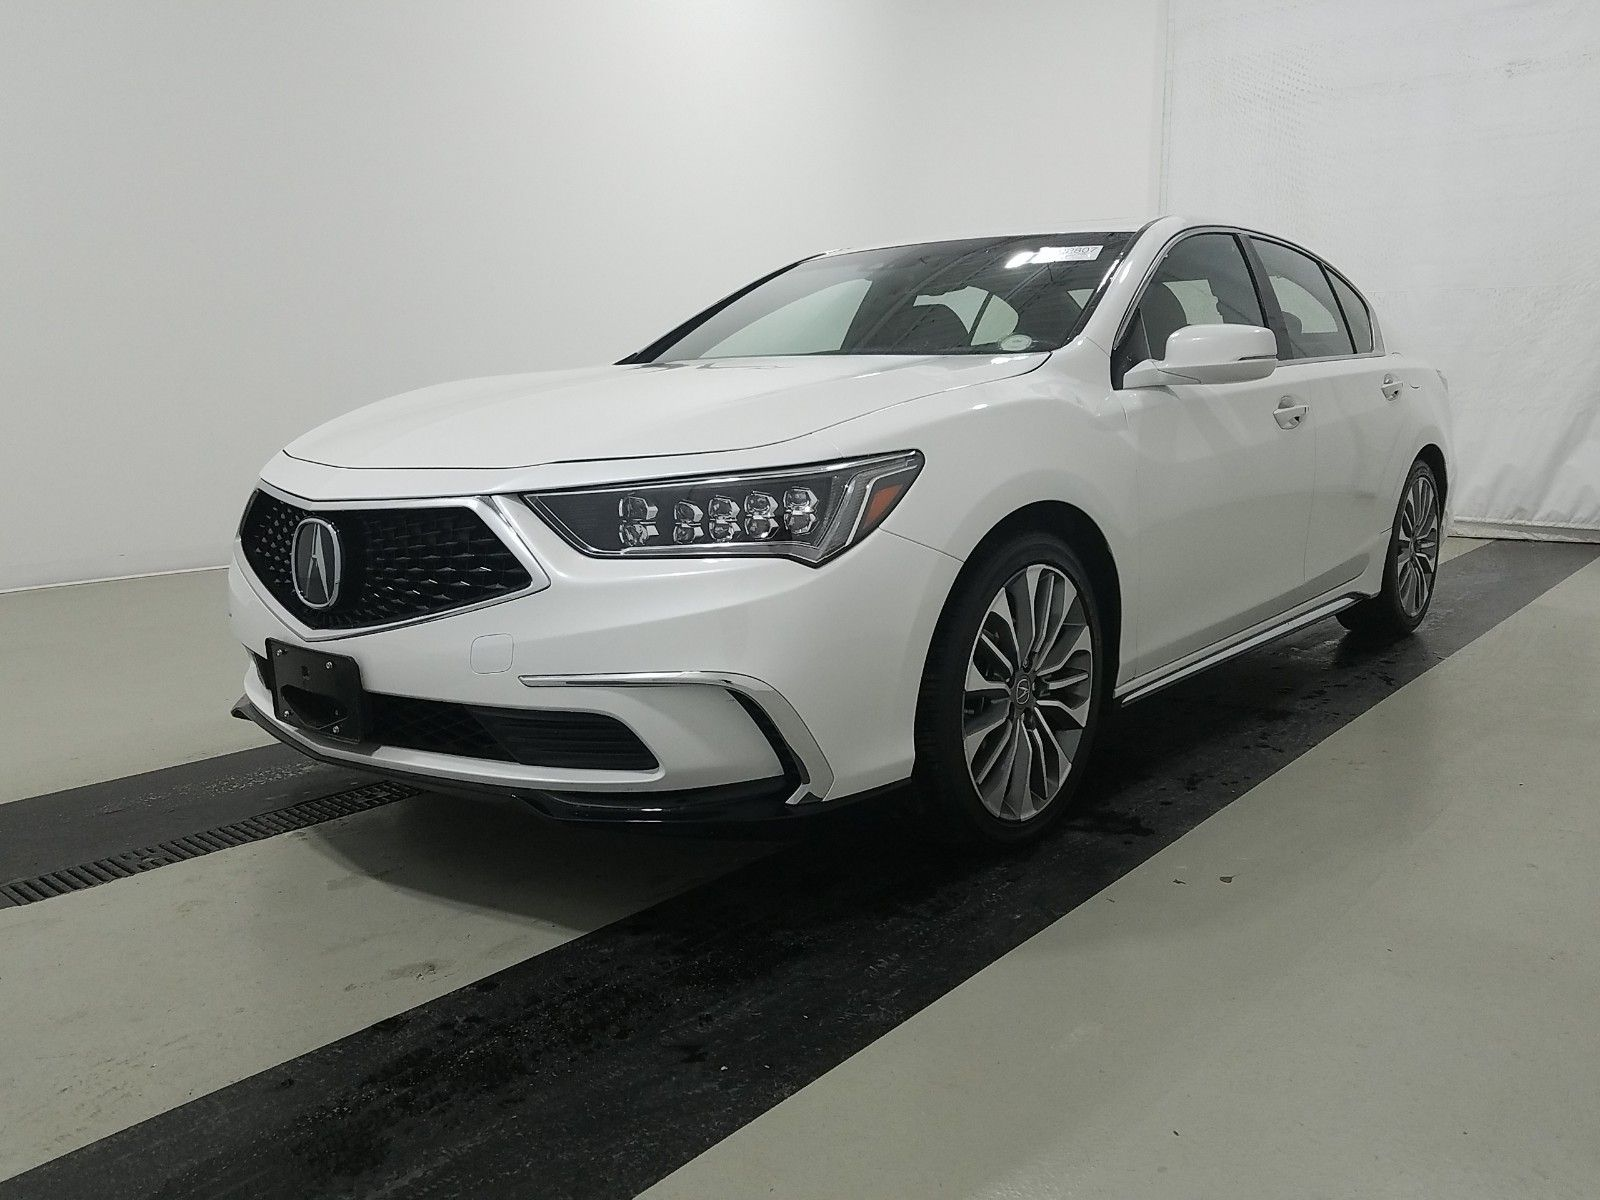 2018 Acura RLX 3.5. Lot 99913164533 Vin JH4KC1F59JC001414